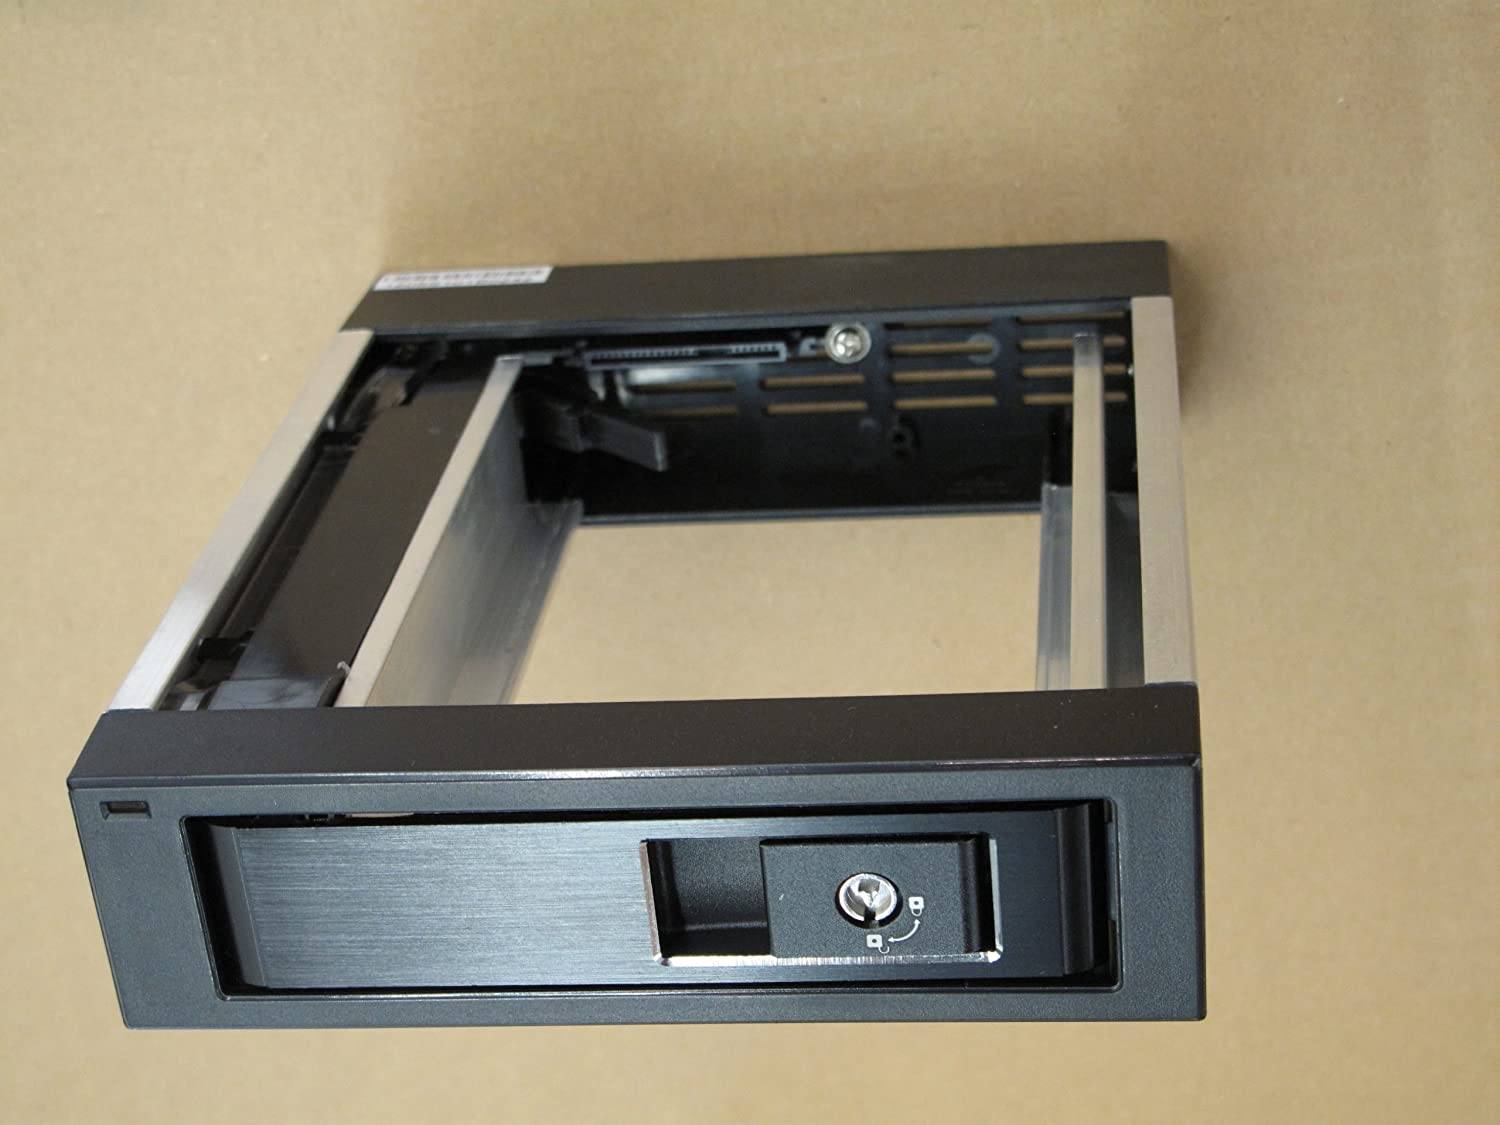 Tray-Less Venus 5.25 SATA Removable Mobile Rack for SDD//HDD